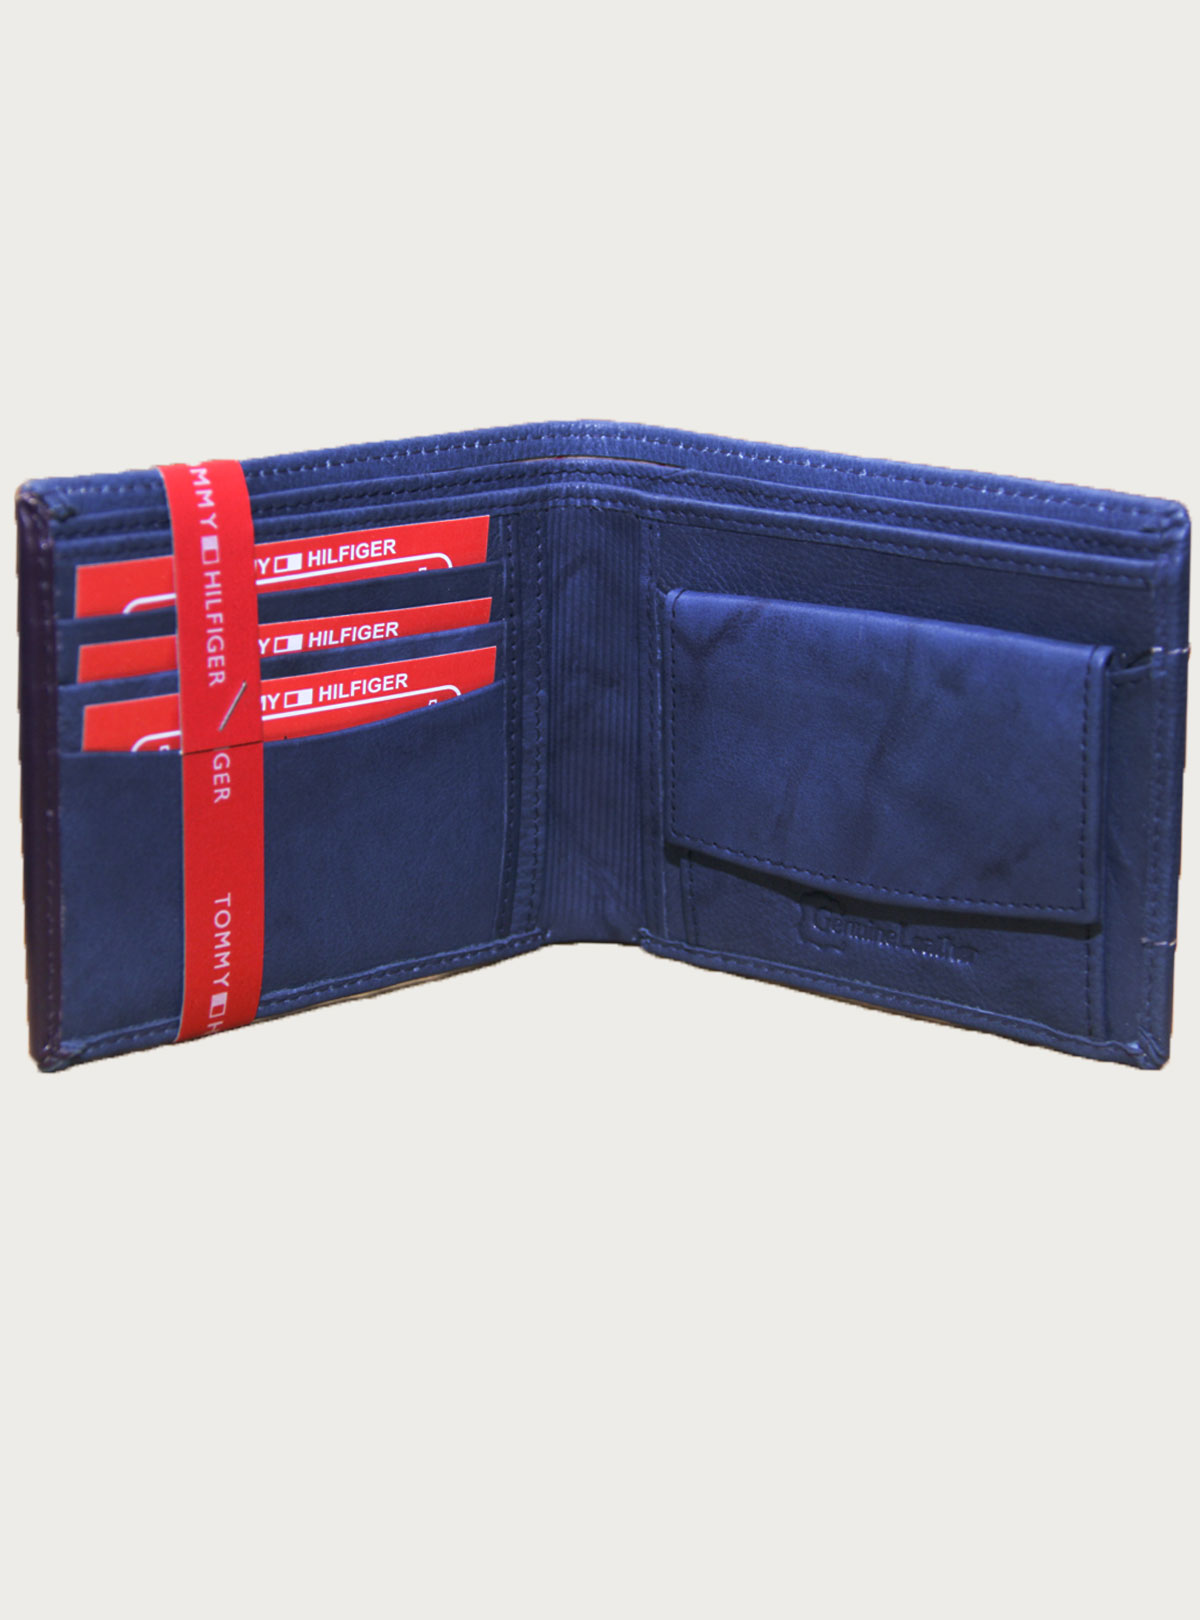 TOMMY HILFIGER Mens Wallet